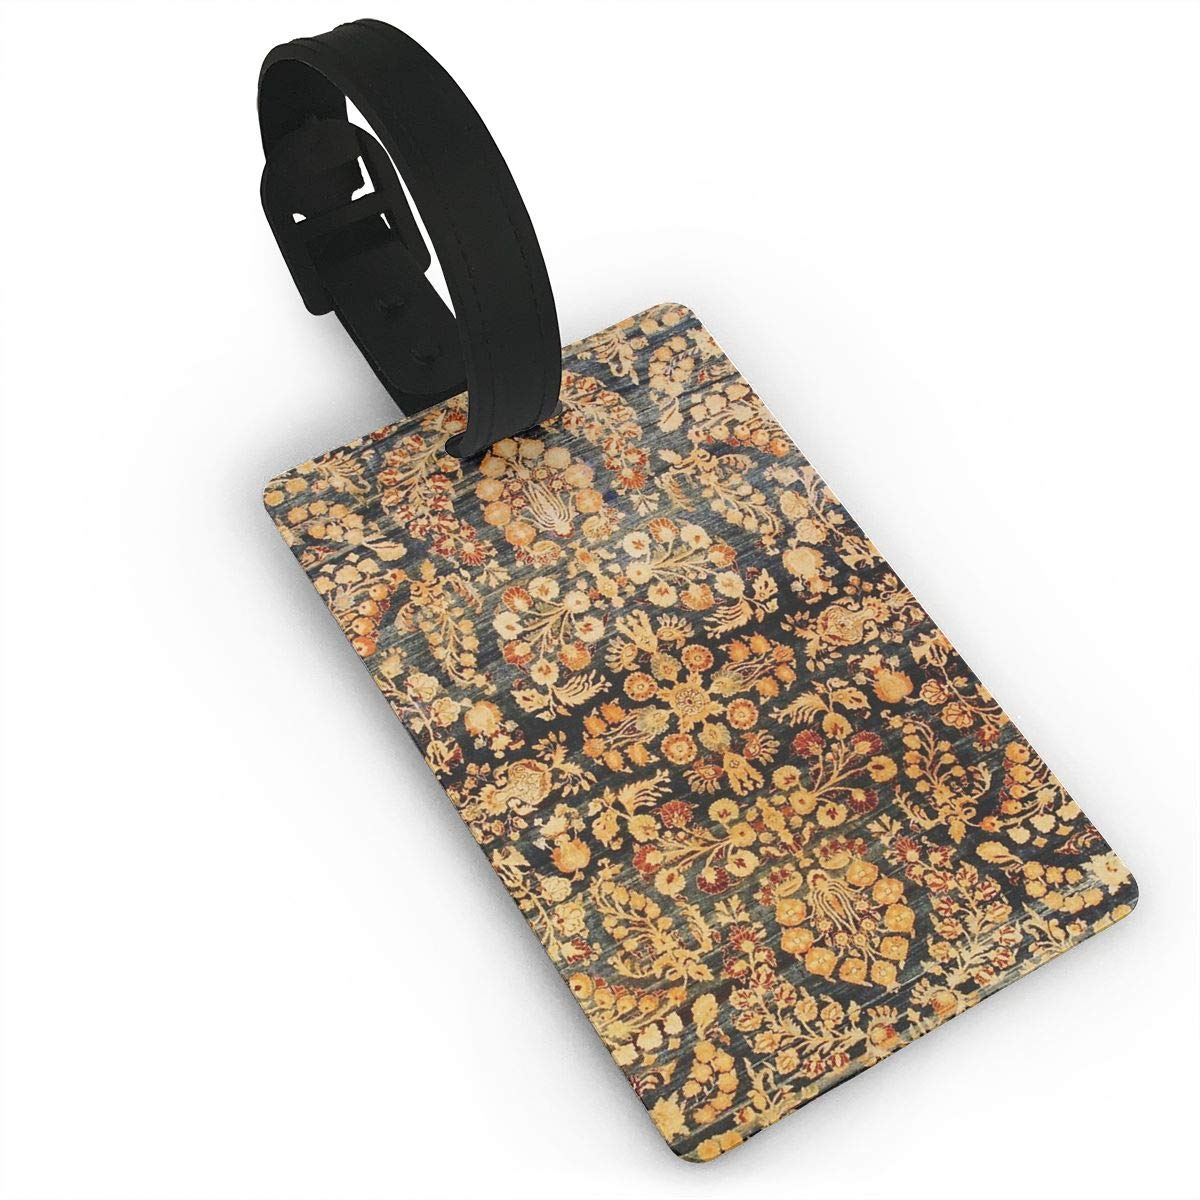 Antique Persian Khorassan Rug Luggage Tags Suitcase Labels Bag Travel Accessories Set of 2